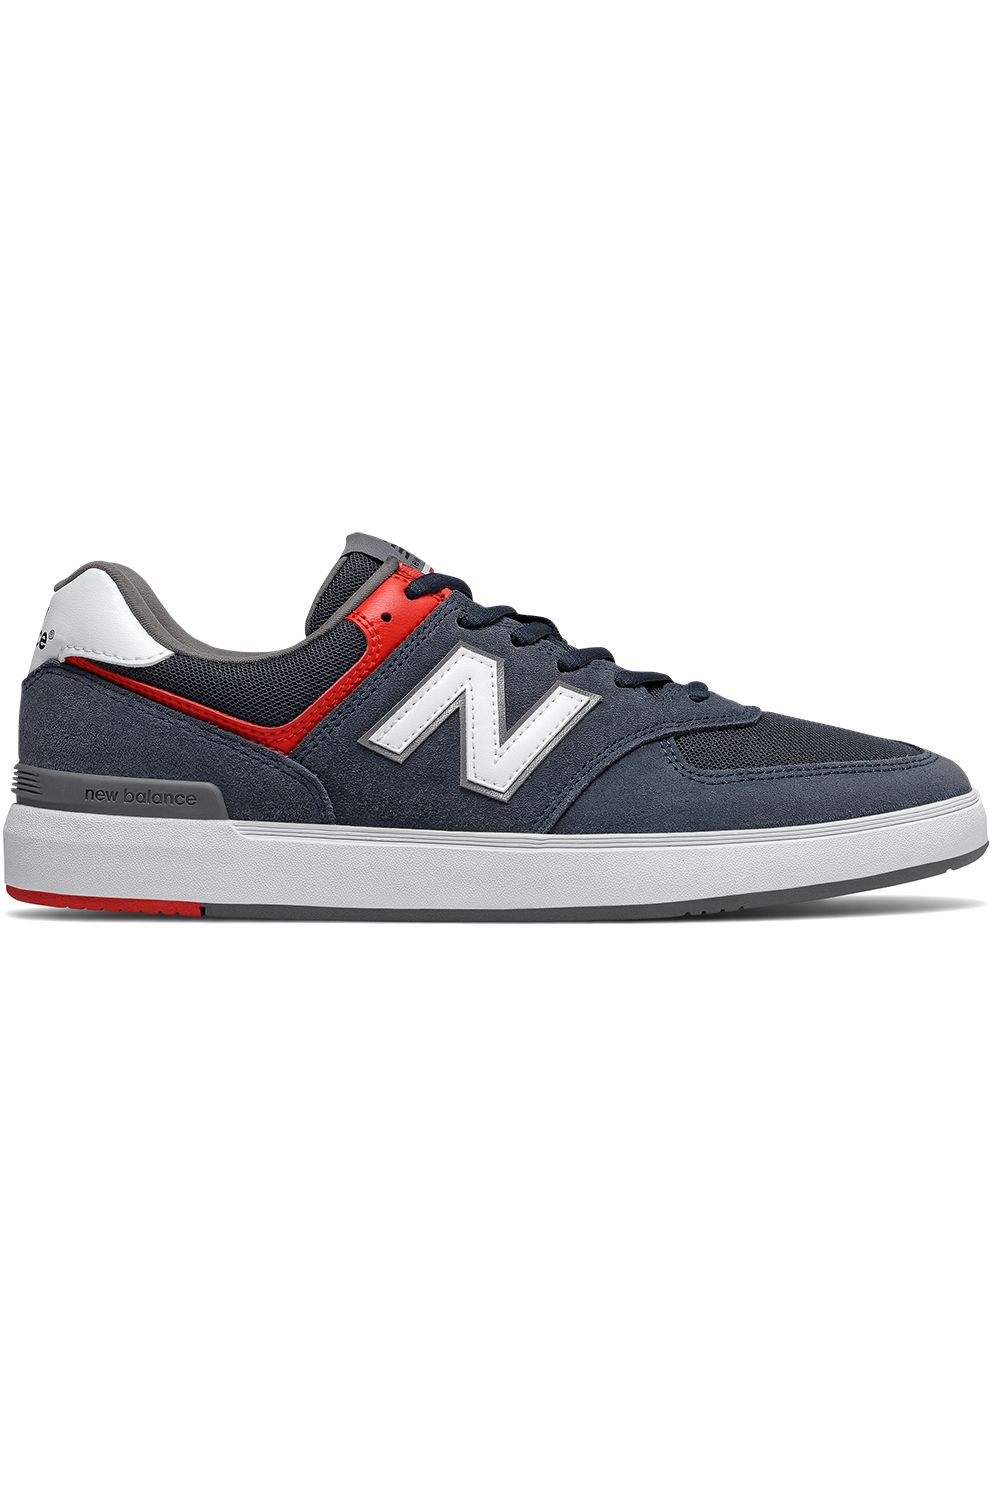 Tenis New Balance AM574 Navy/Red